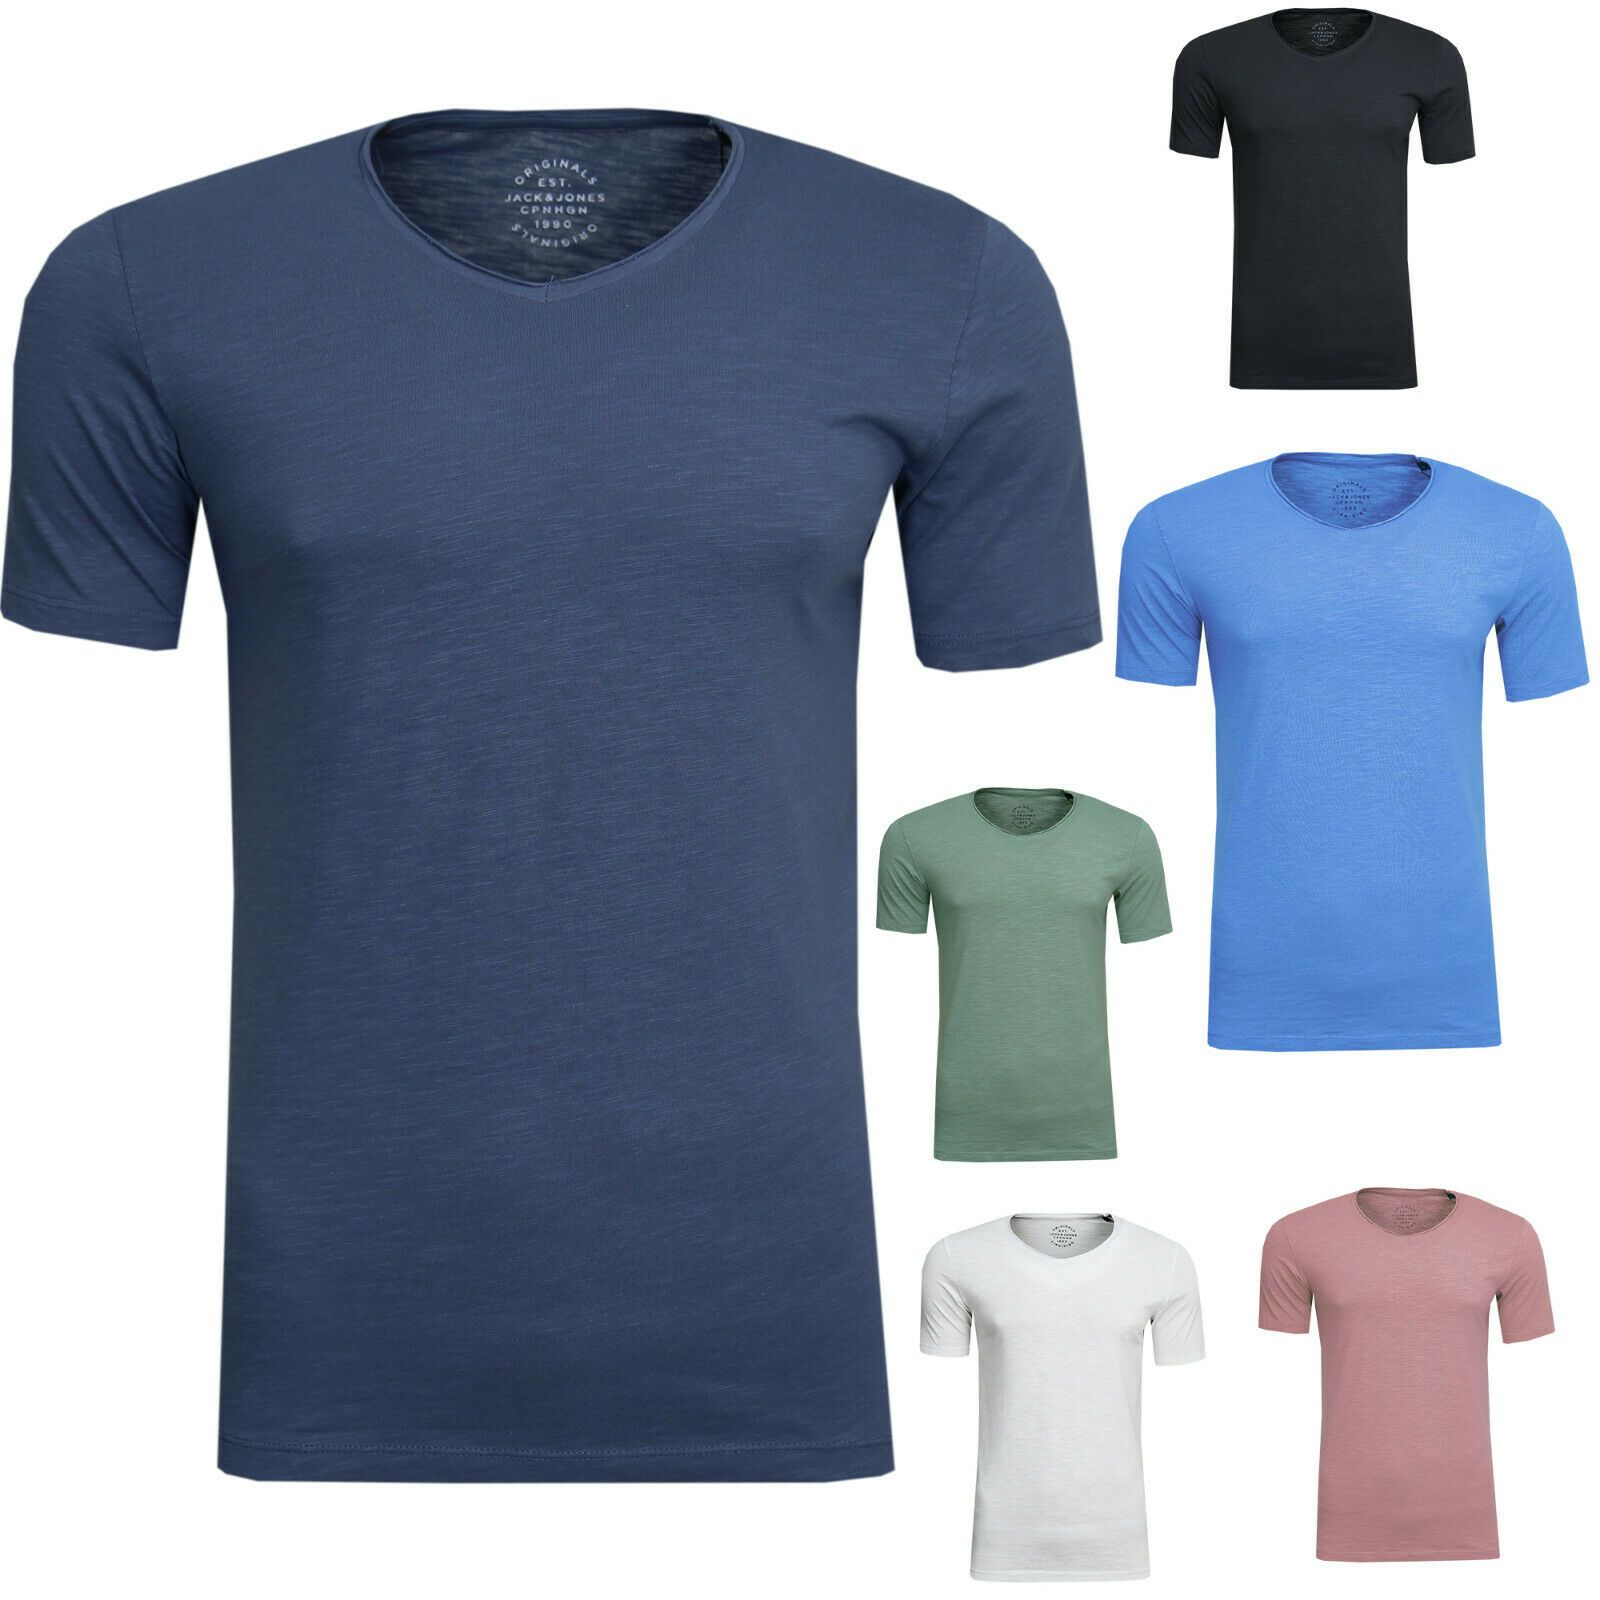 JACK & JONES Herren T-Shirt V-Neck Unterhemd Baumwolle Slim Fit NEU - Jack & Jones